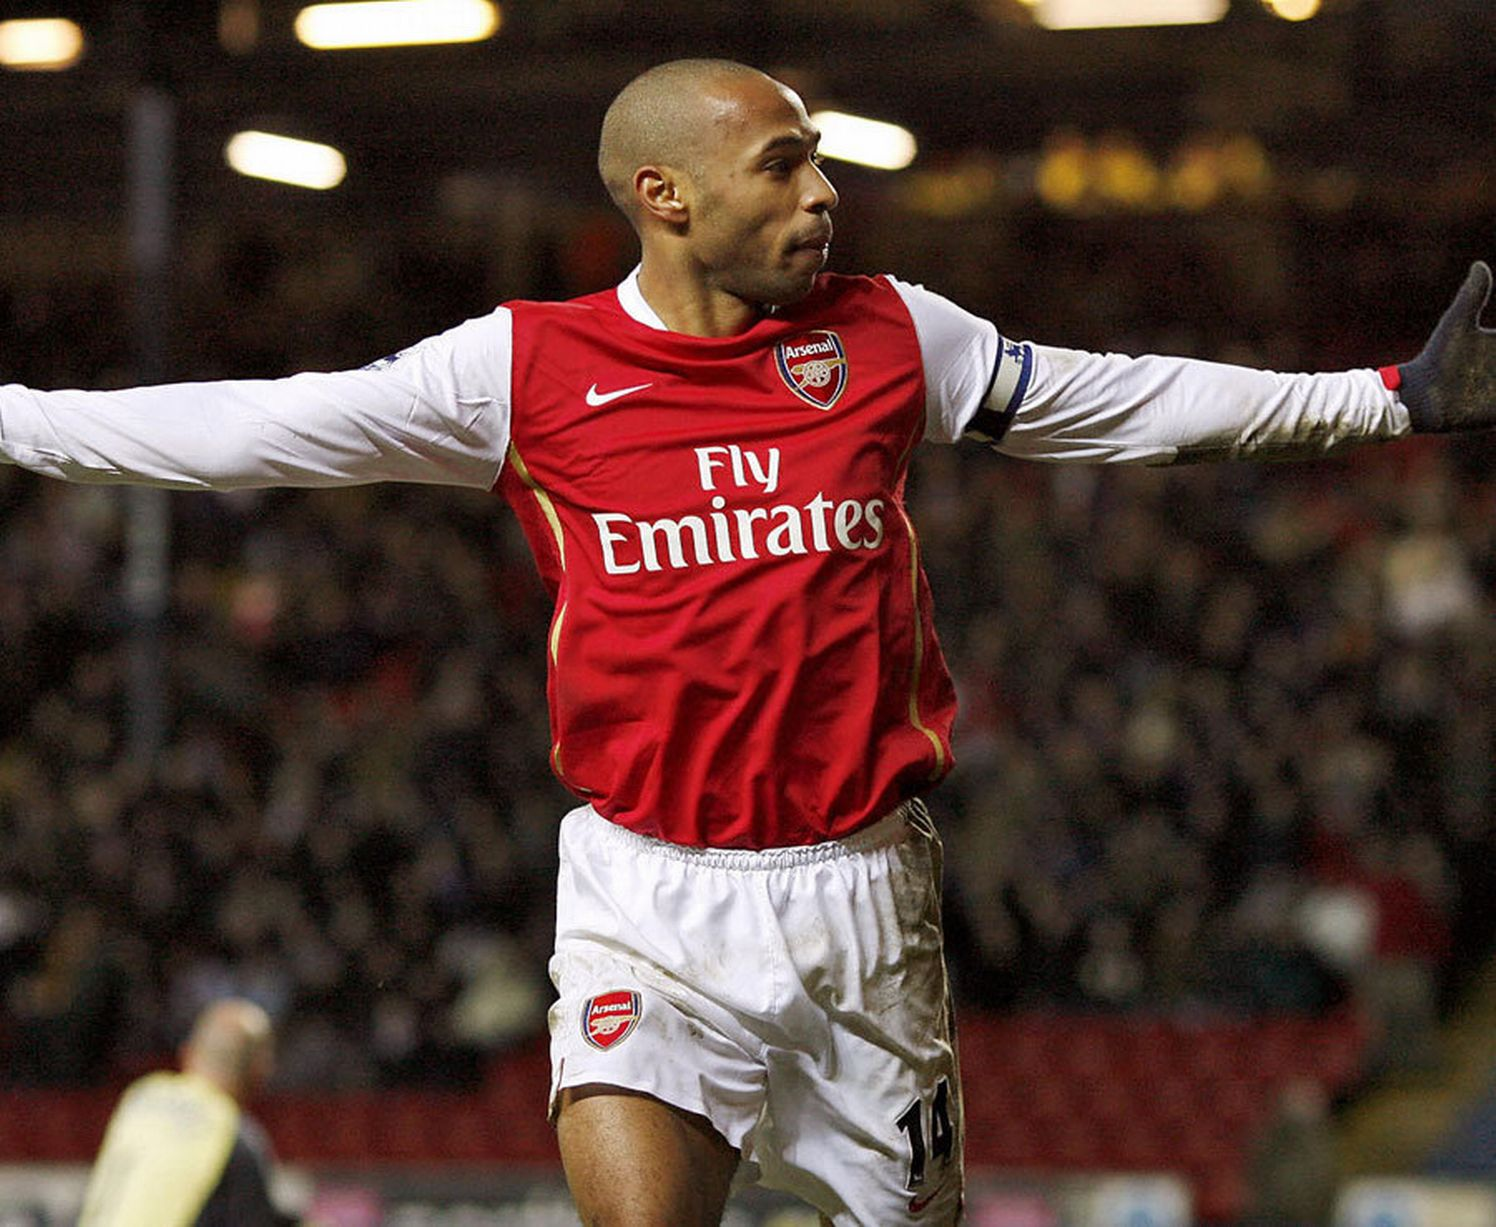 BEST FRENCH FOOTBALLERS TO PLAY IN THE EPL: TOP 10